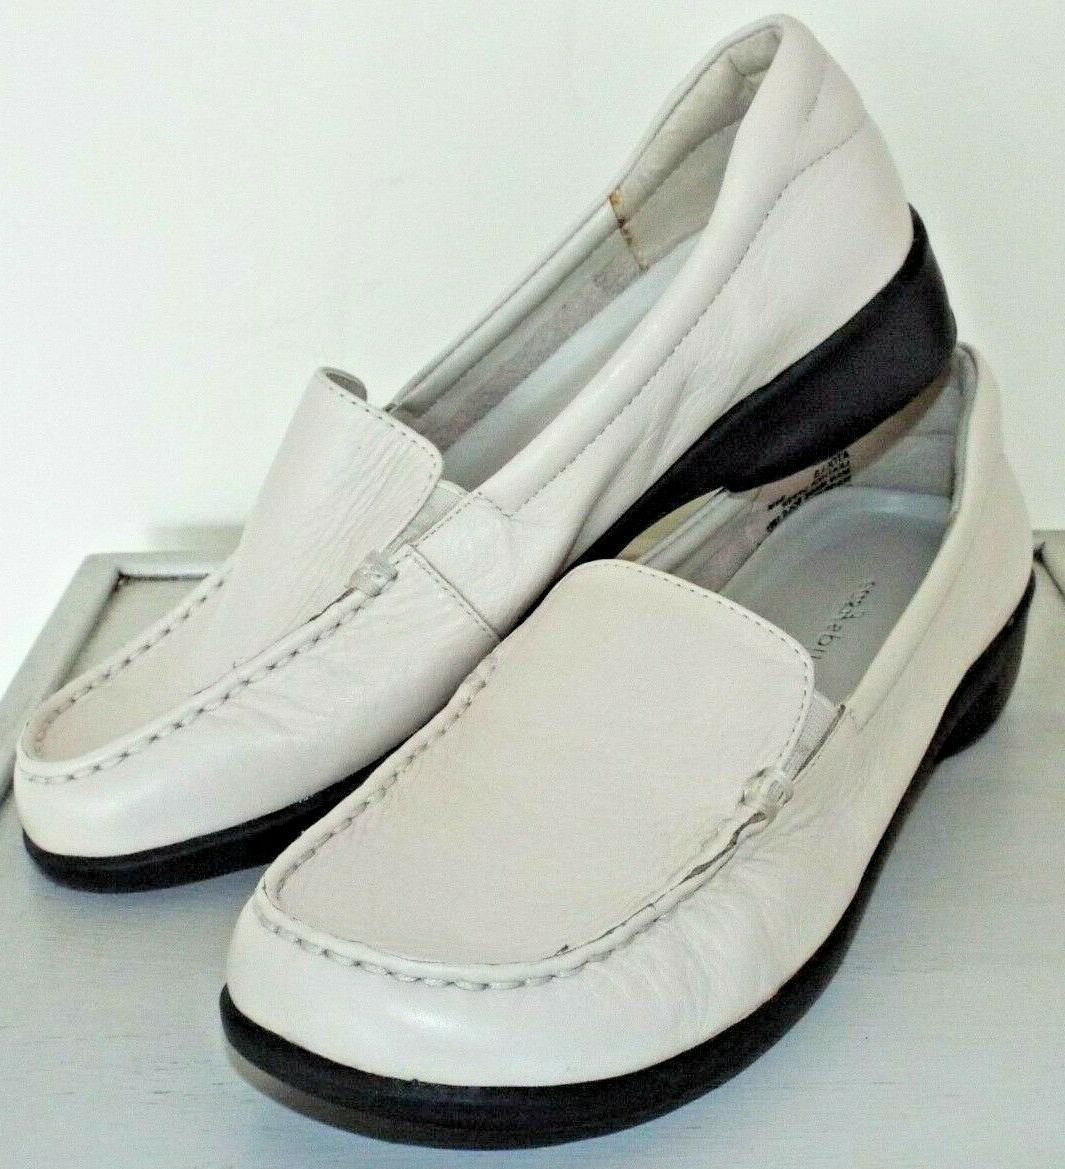 Easy Spirit Atolls Leather Loafer Comfort Shoes 6.5M